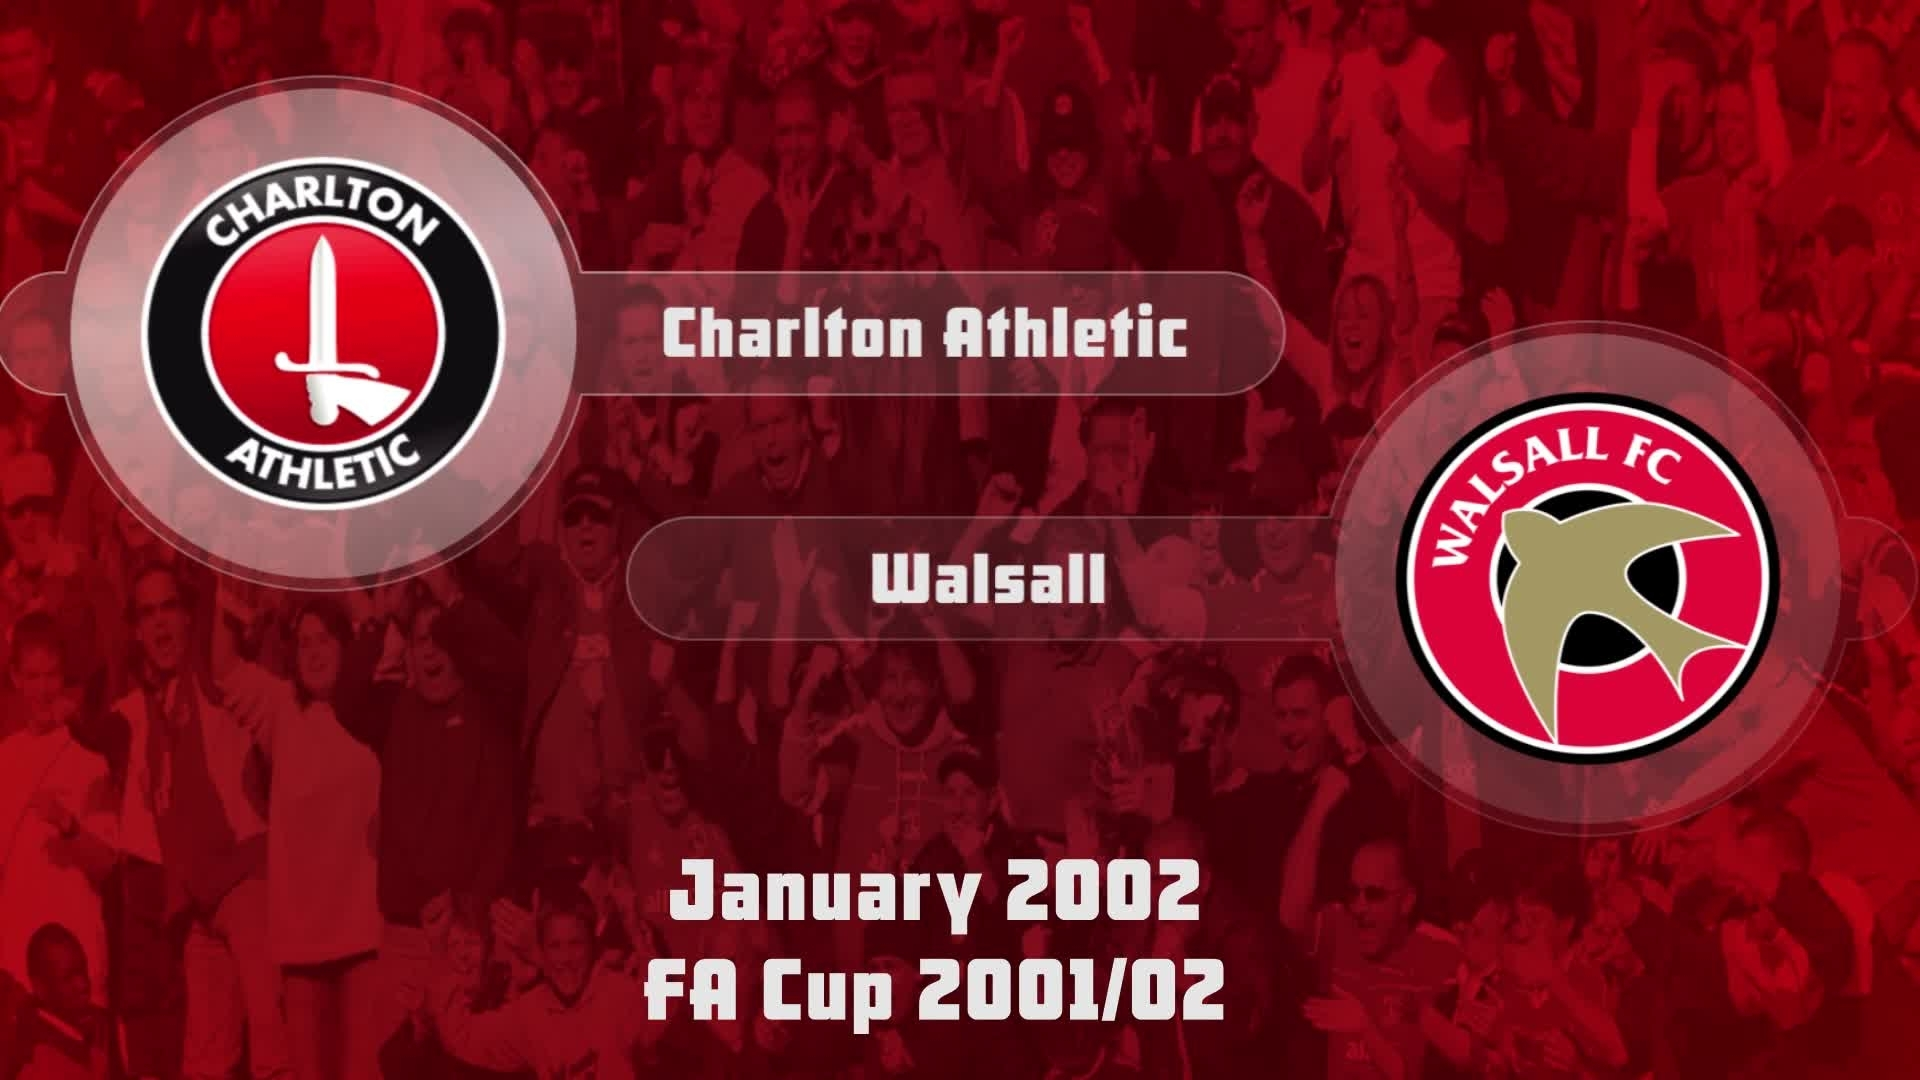 28 HIGHLIGHTS | Charlton 1 Walsall 2 (Jan 2002)